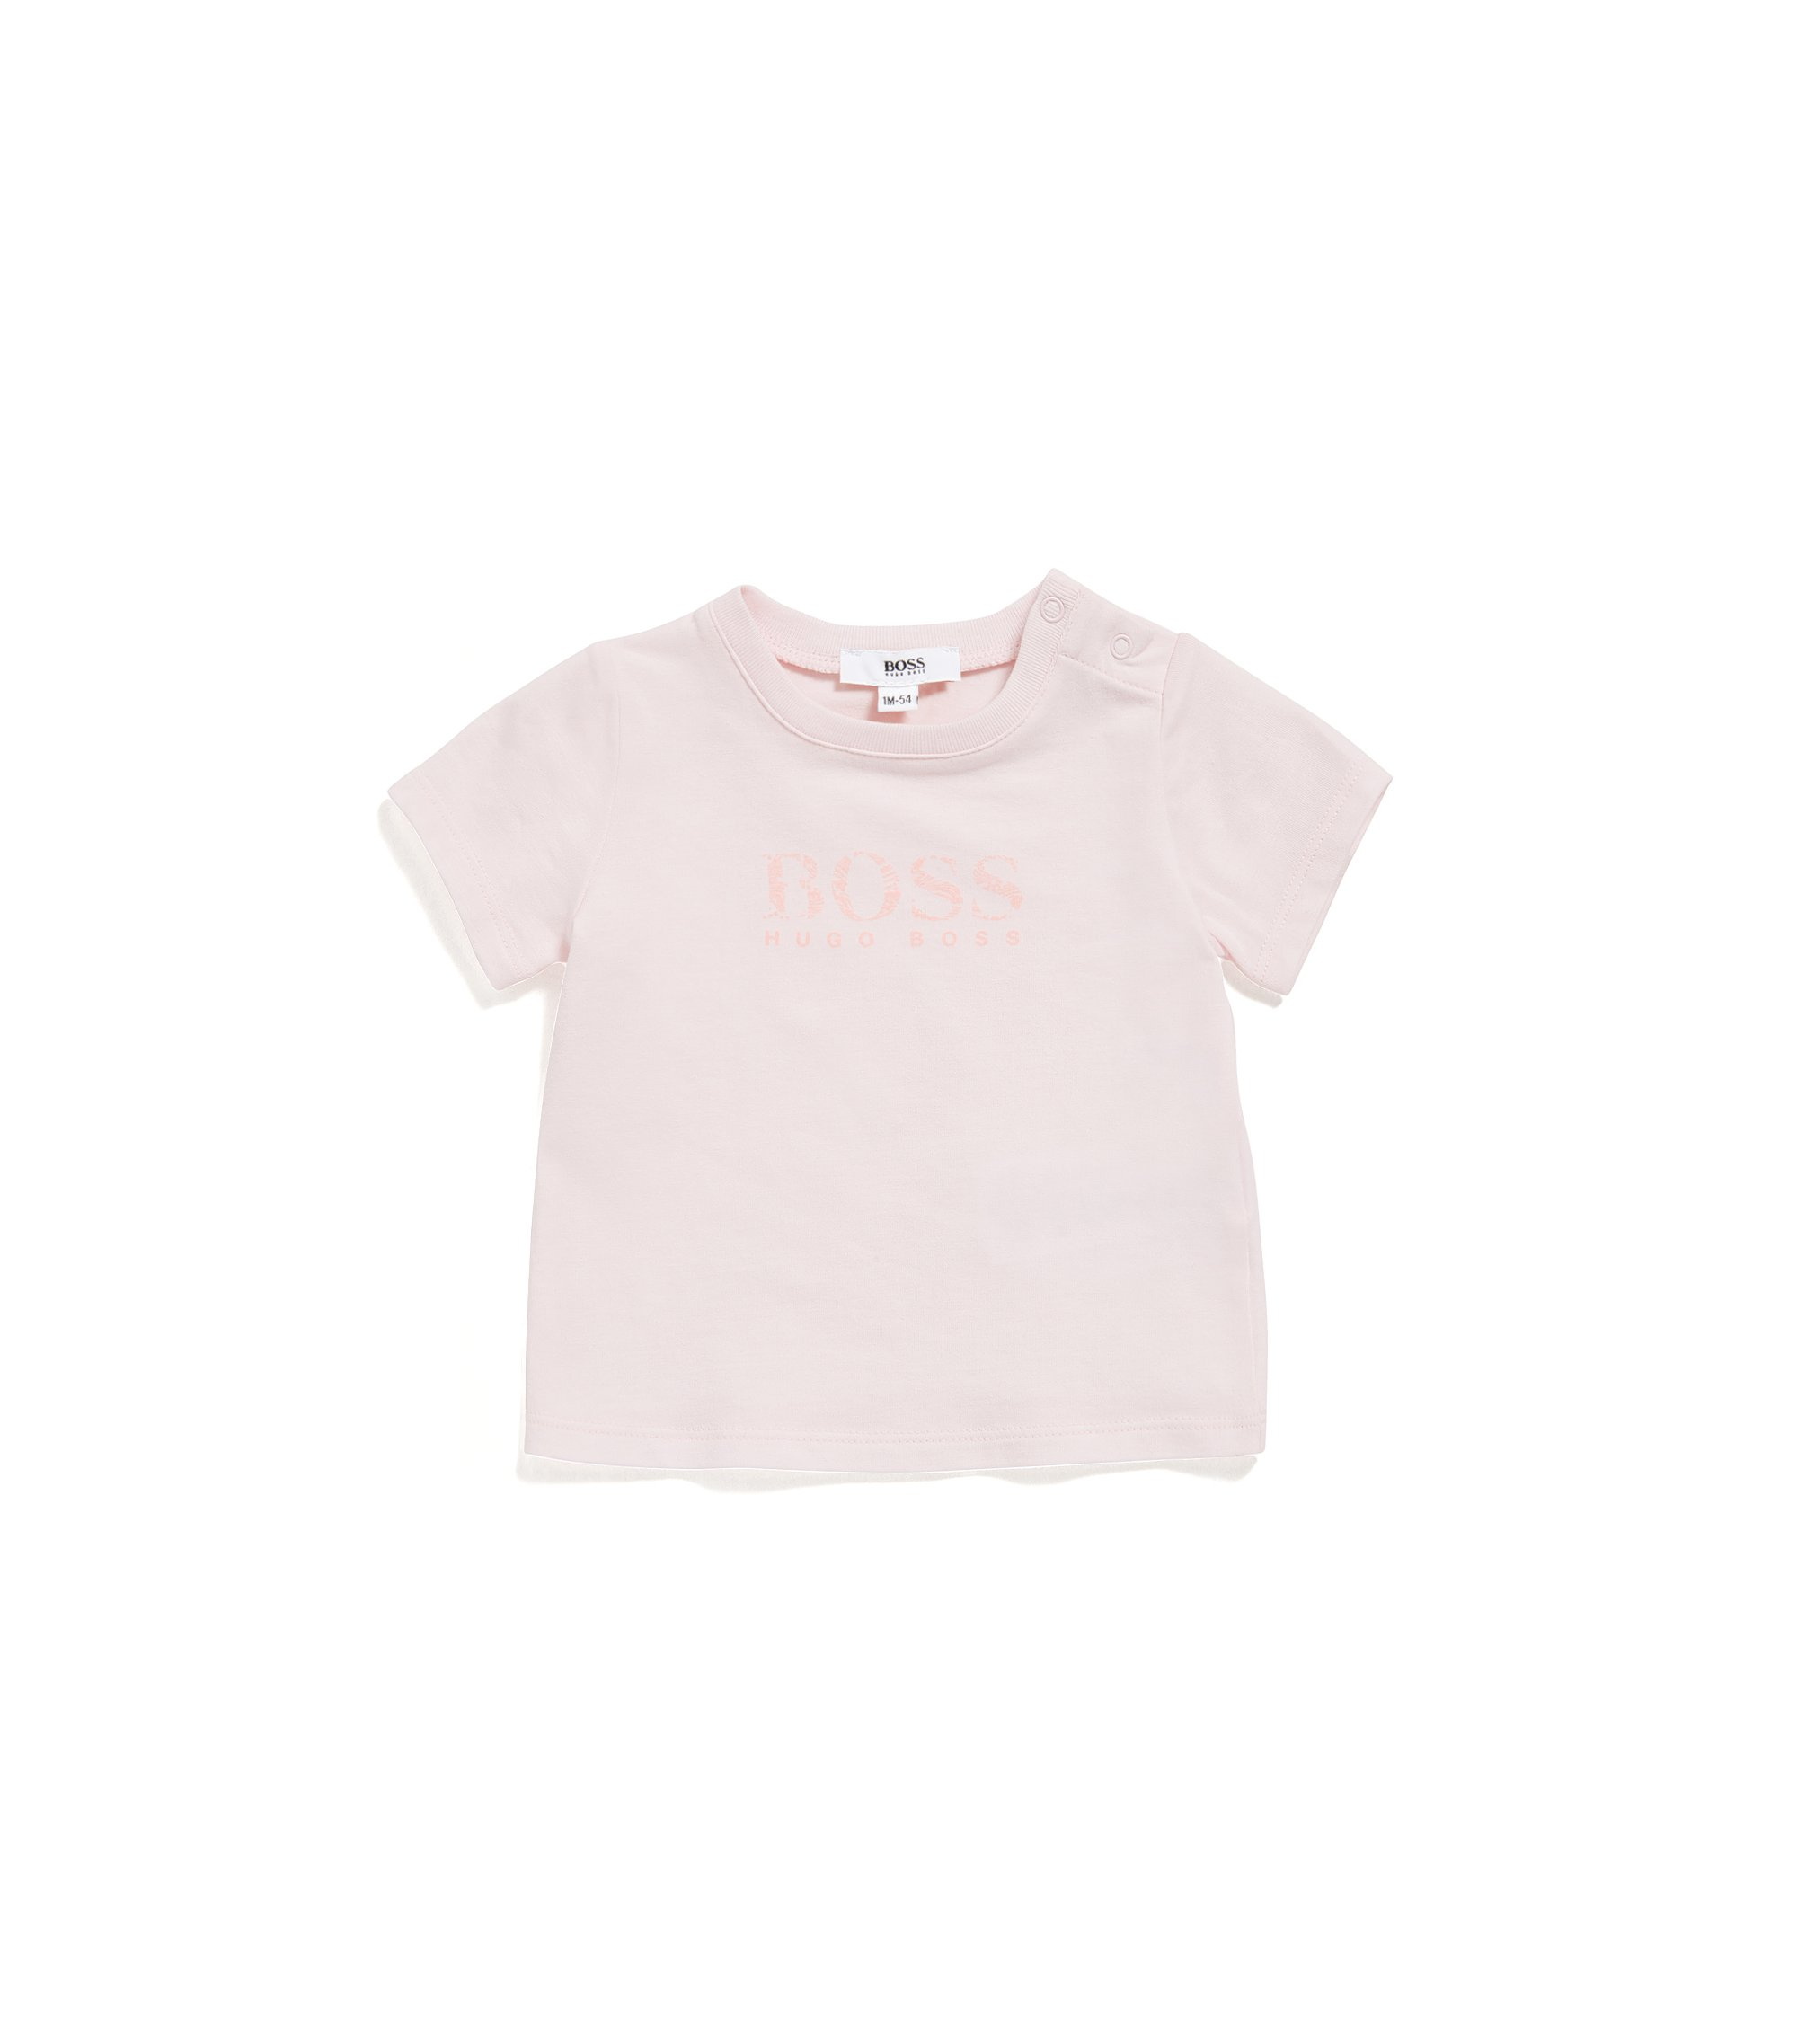 T-shirt Regular Fit en jersey simple, pour bébé, Rose clair